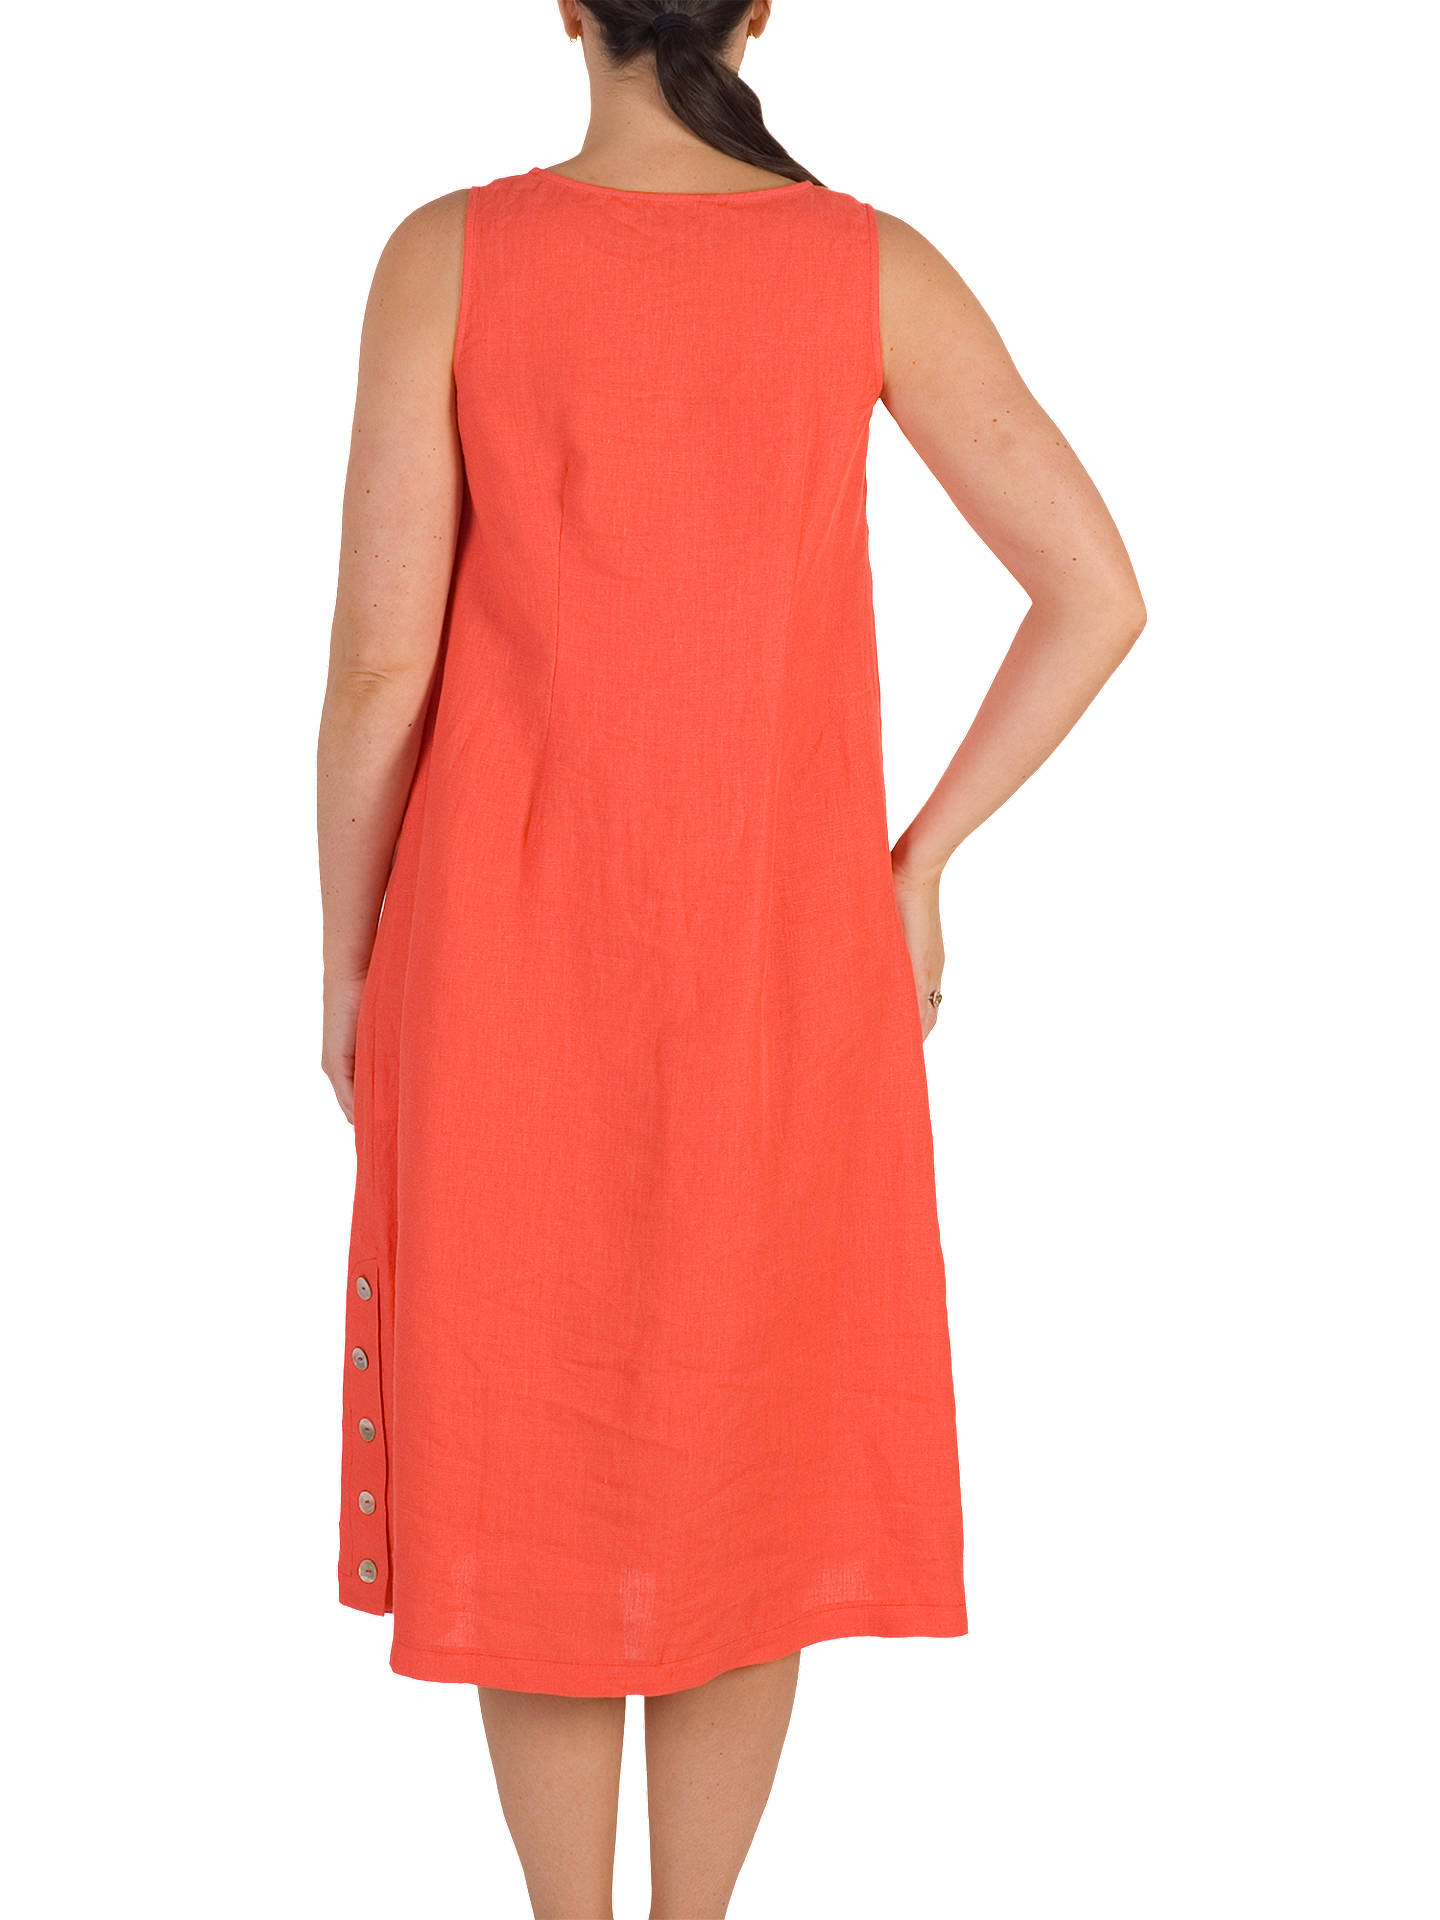 BuyChesca Button Trim Linen Dress, Orange, 14 Online at johnlewis.com